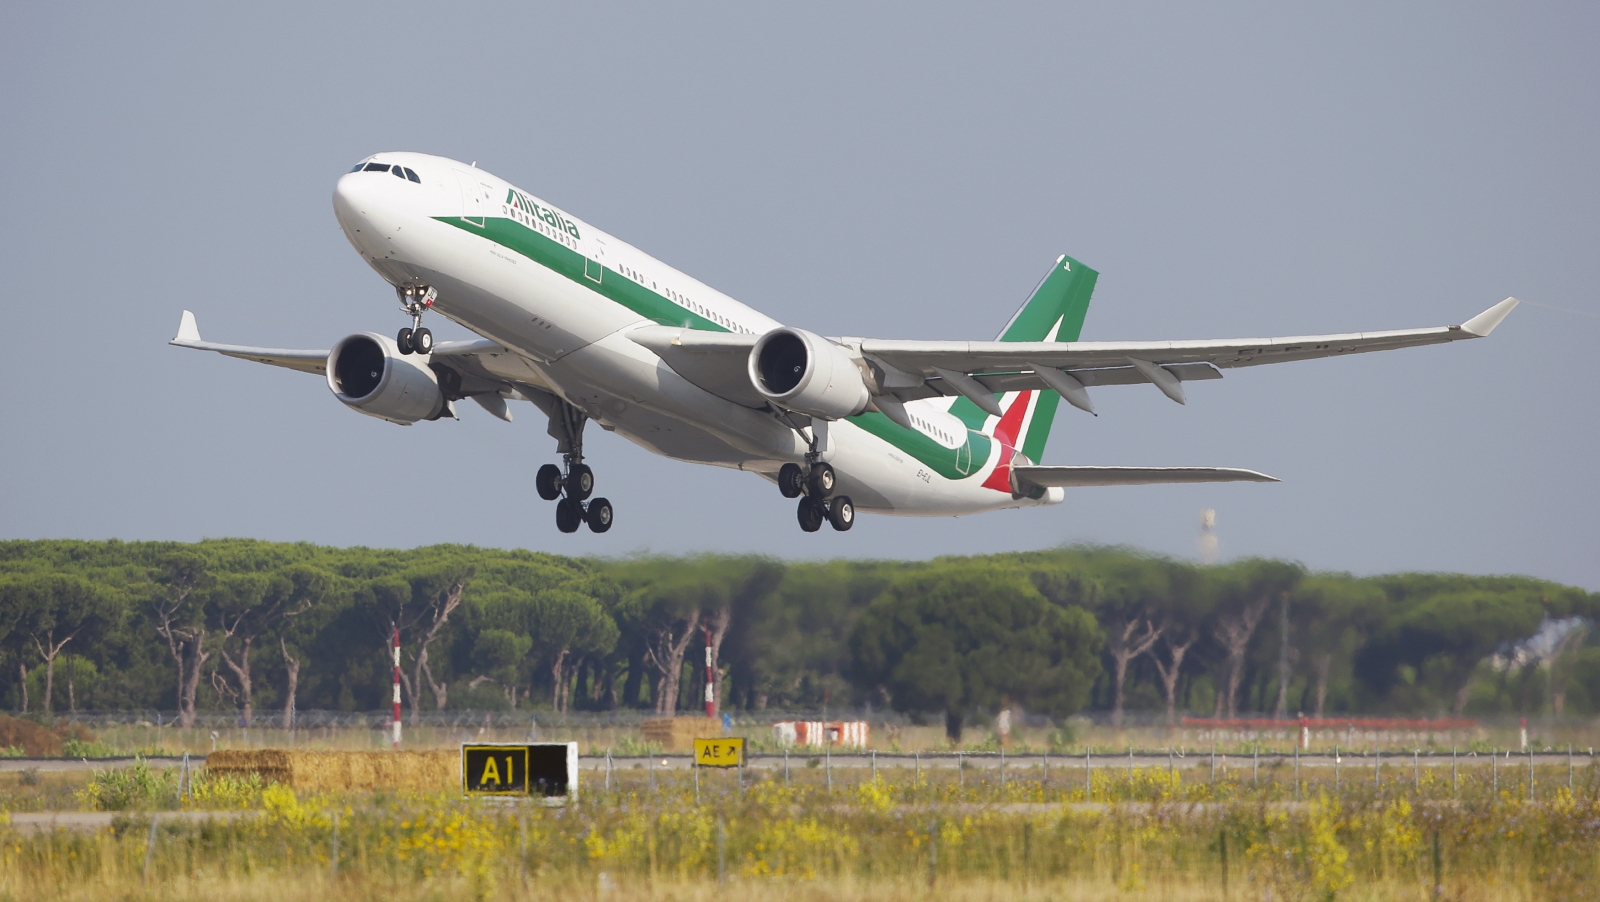 Rome FCO airport fire